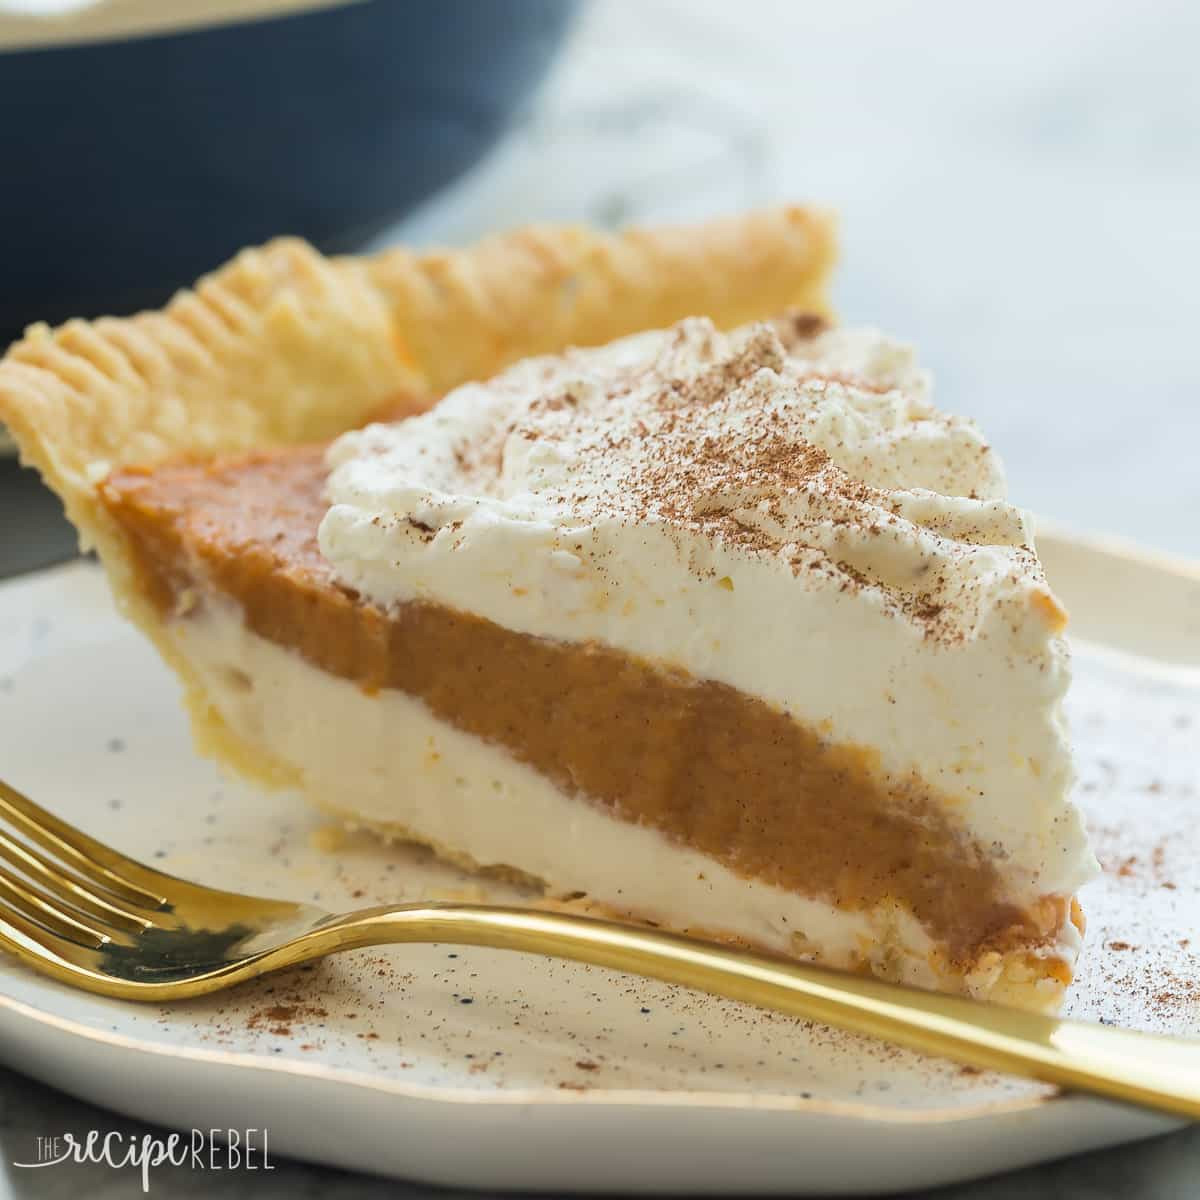 Cream Cheese Pumpkin Pie  Cream Cheese Pumpkin Pie The Recipe Rebel